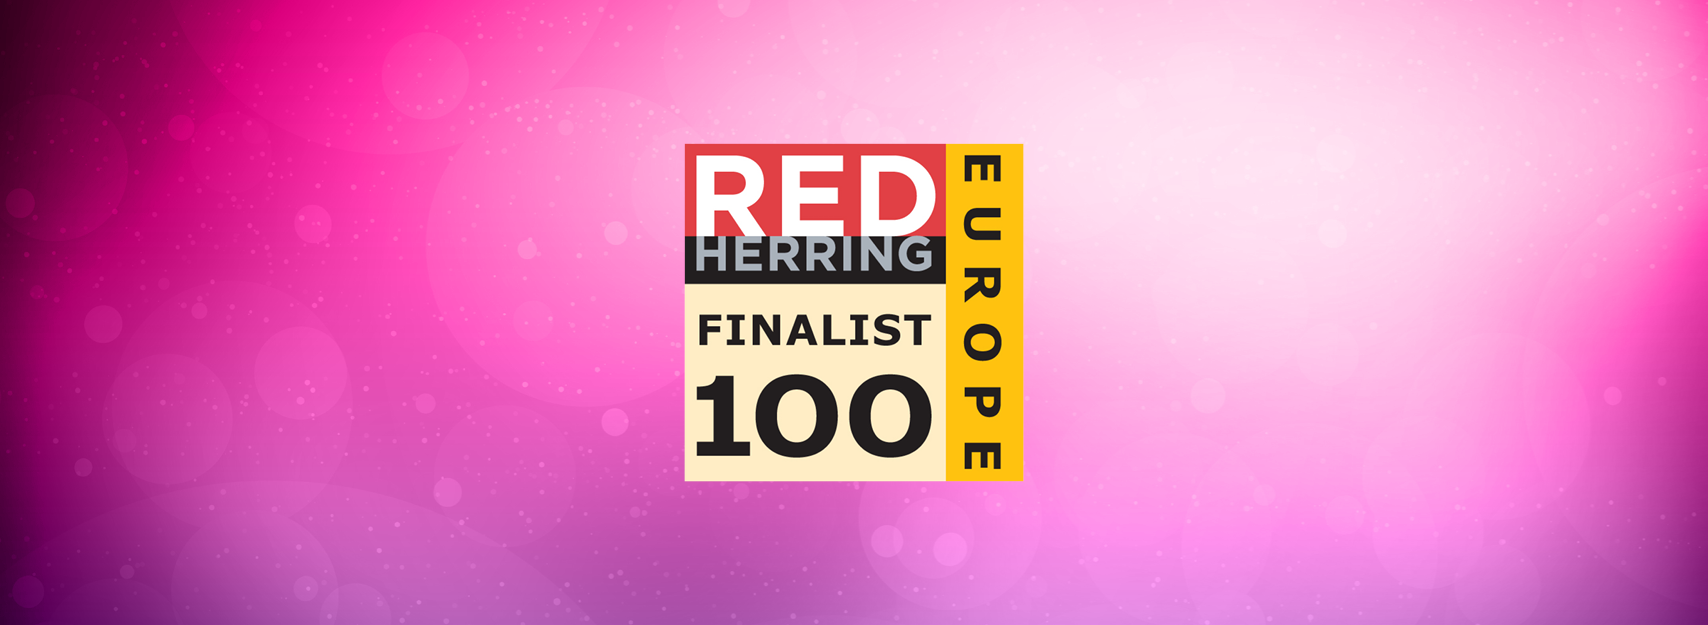 2017 Red Herring Top 100 Europe Award